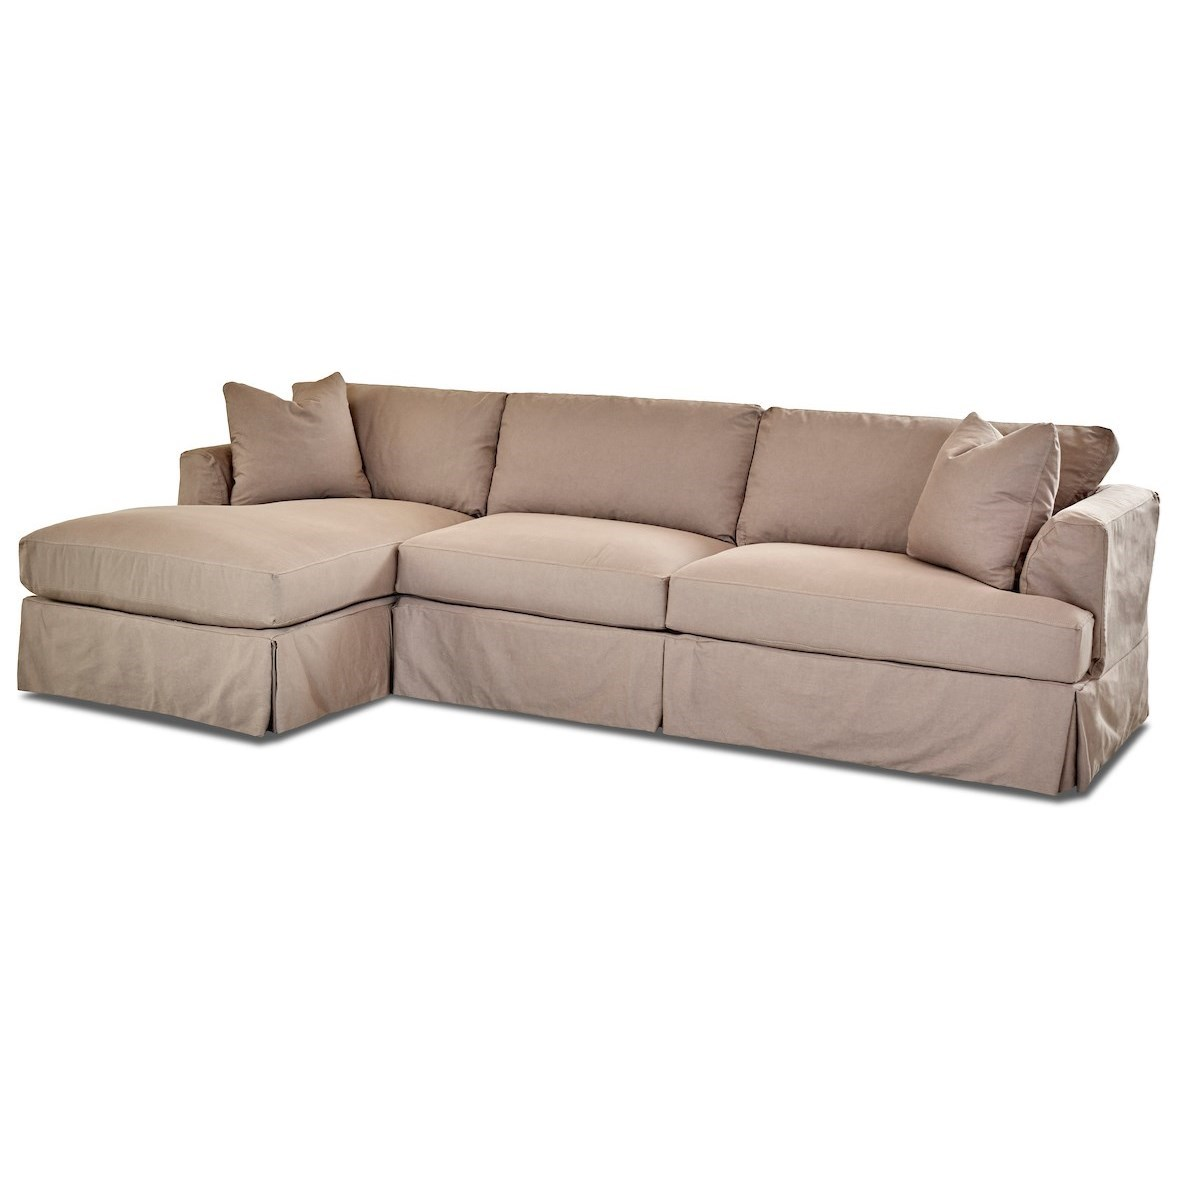 3-Seat Chaise Sofa Sectional w/ LAF Chaise